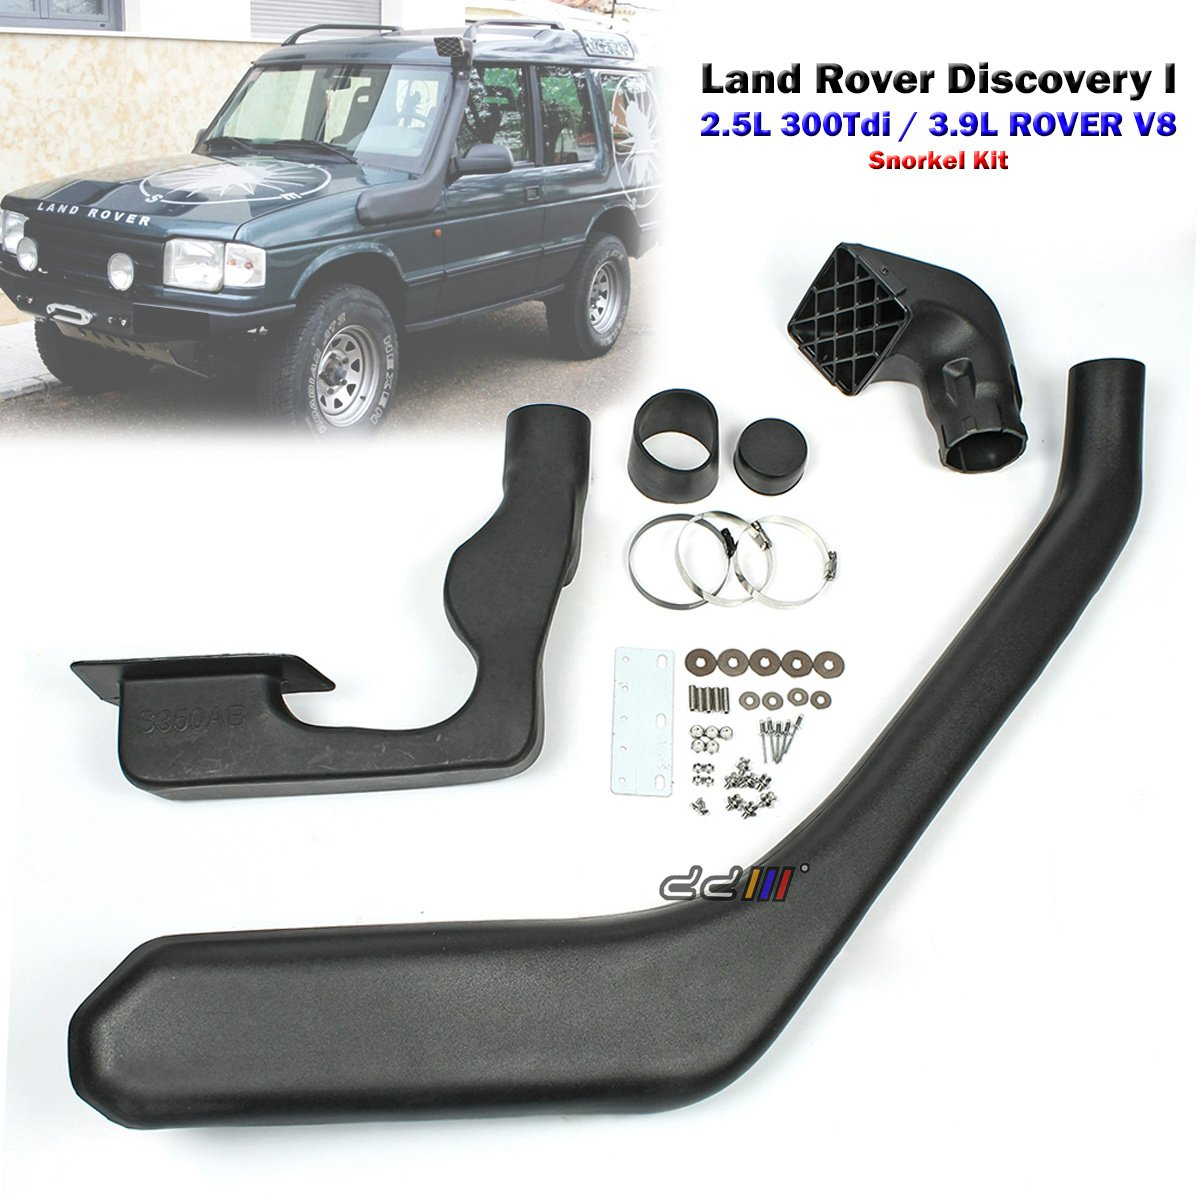 4x4 Off Road Snorkel Kit For Land Rover Discovery 1 300 1998 Parts Series 300tdi 1994 98 Automotive